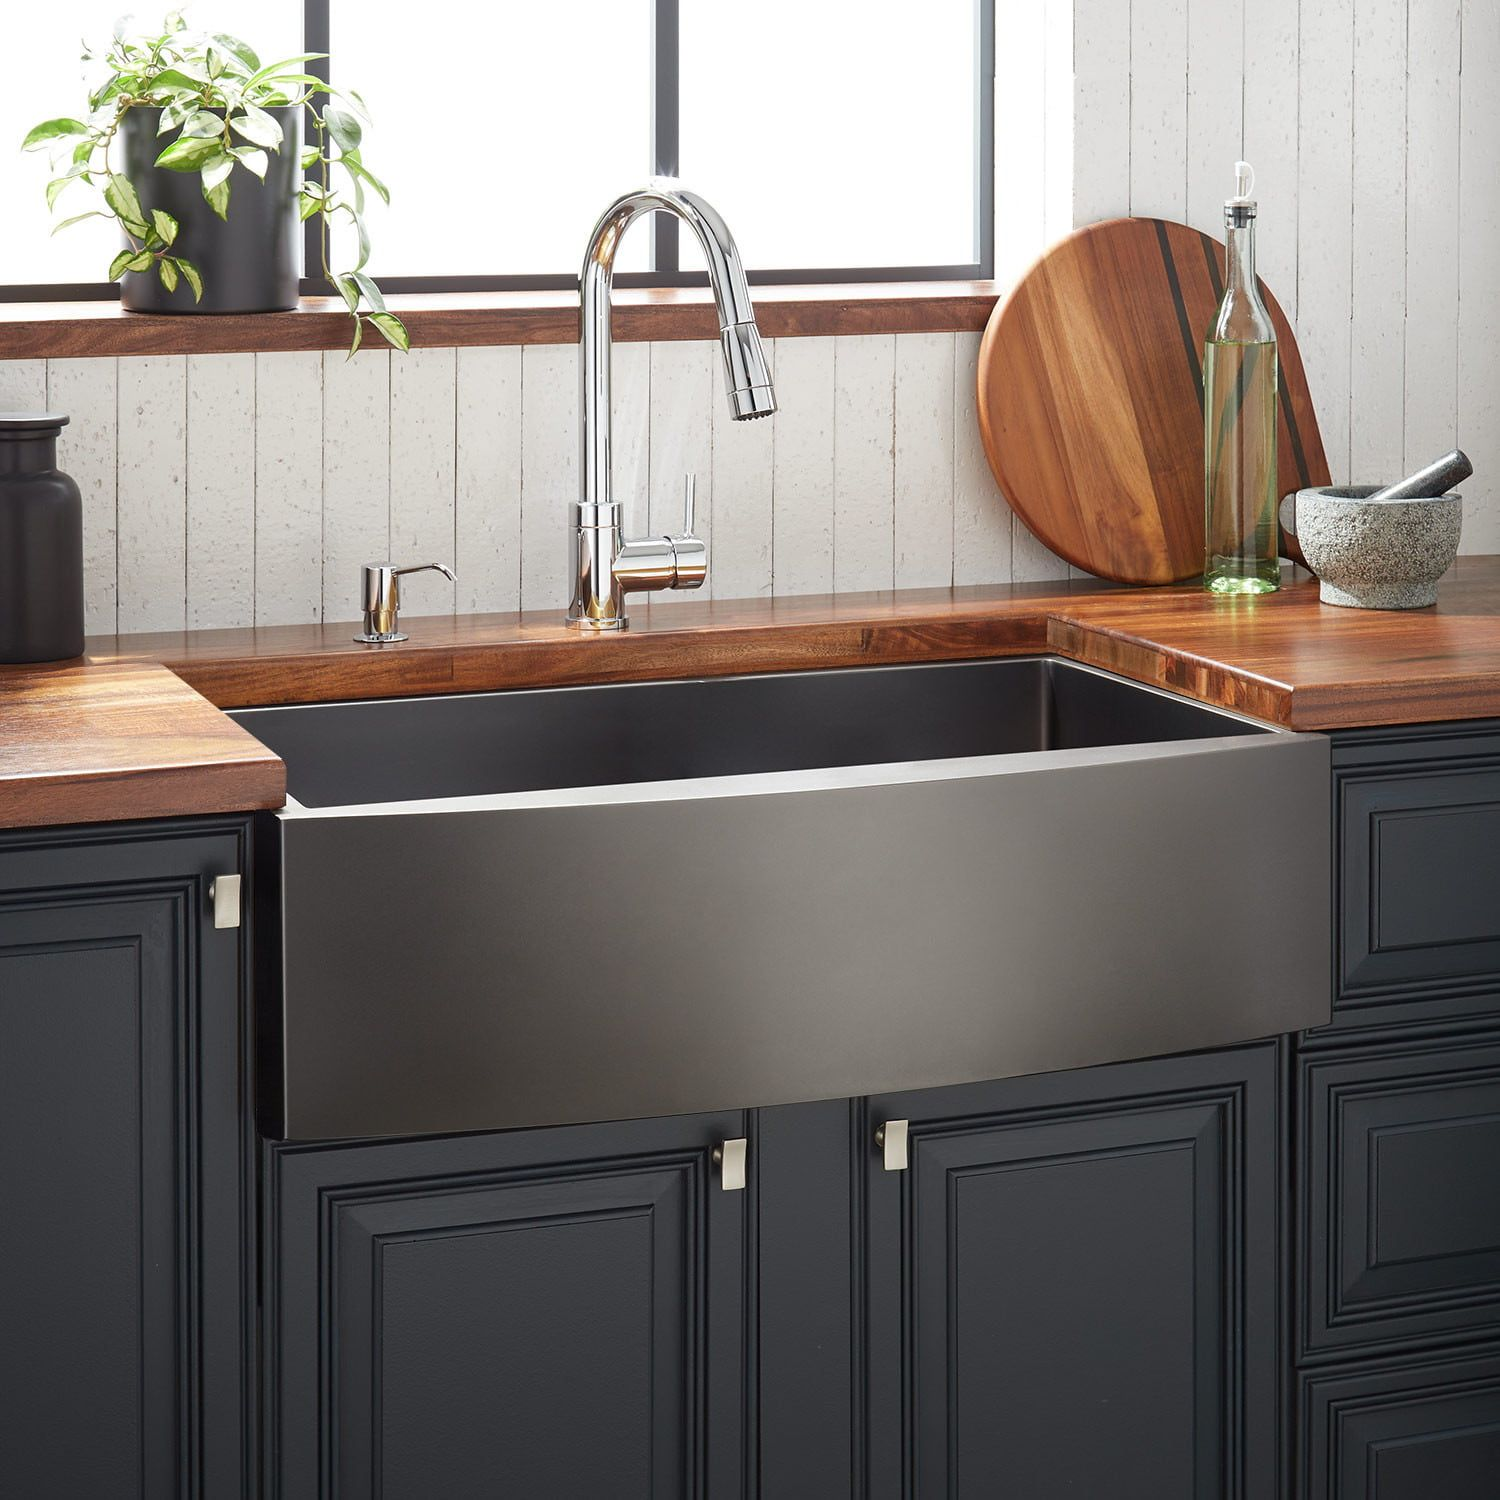 36 atlas stainless steel farmhouse sink curved apron